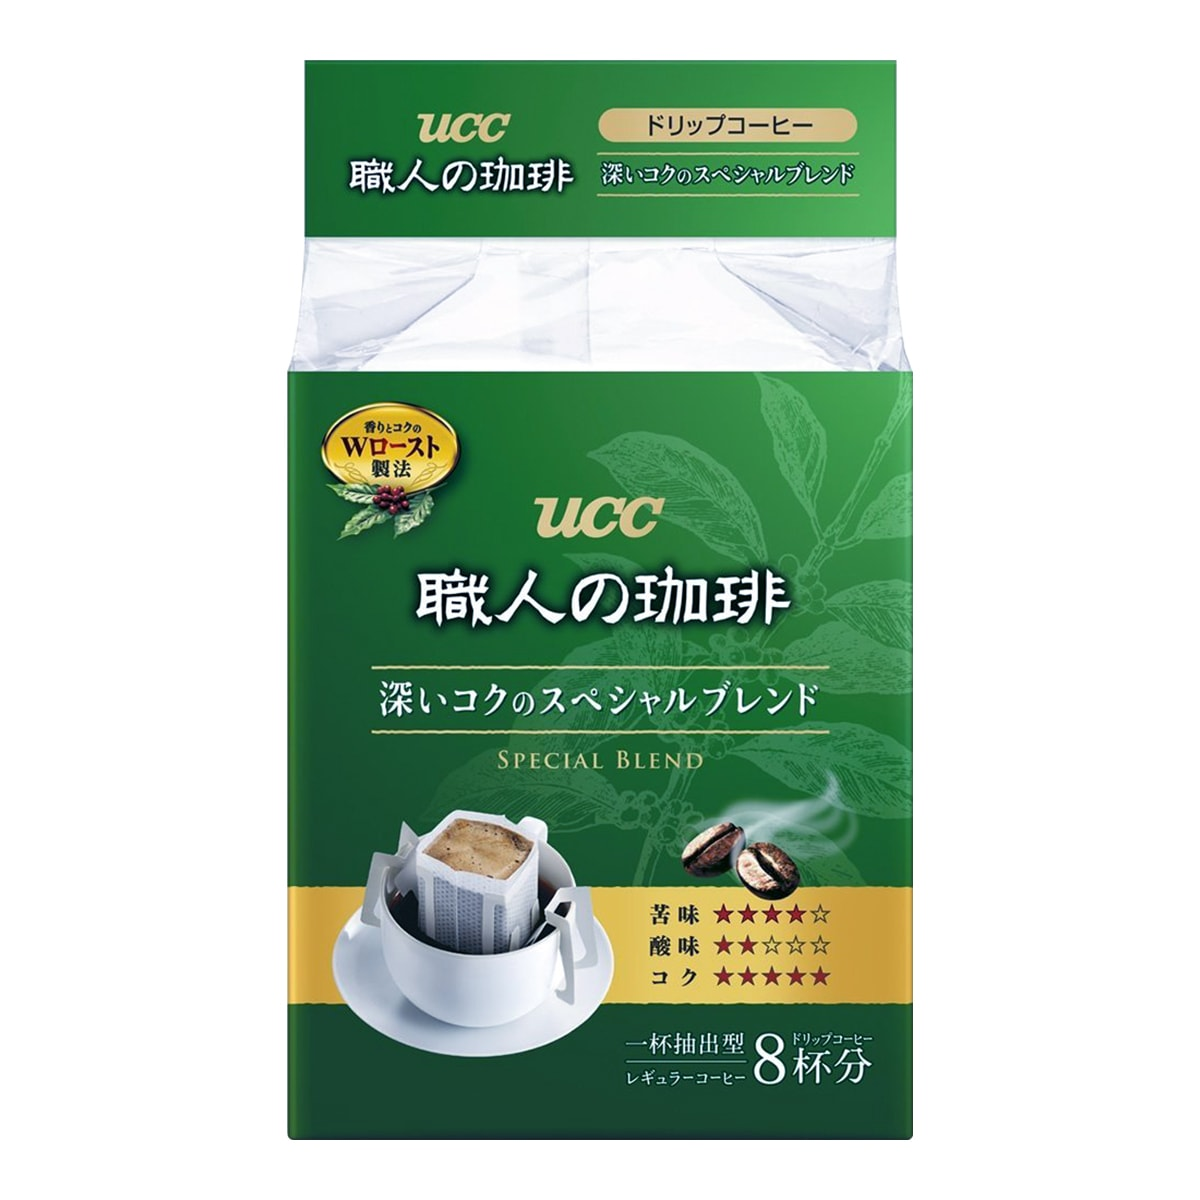 UCC Shokunin-No Drip Coffee Special Blend 8pc 56g